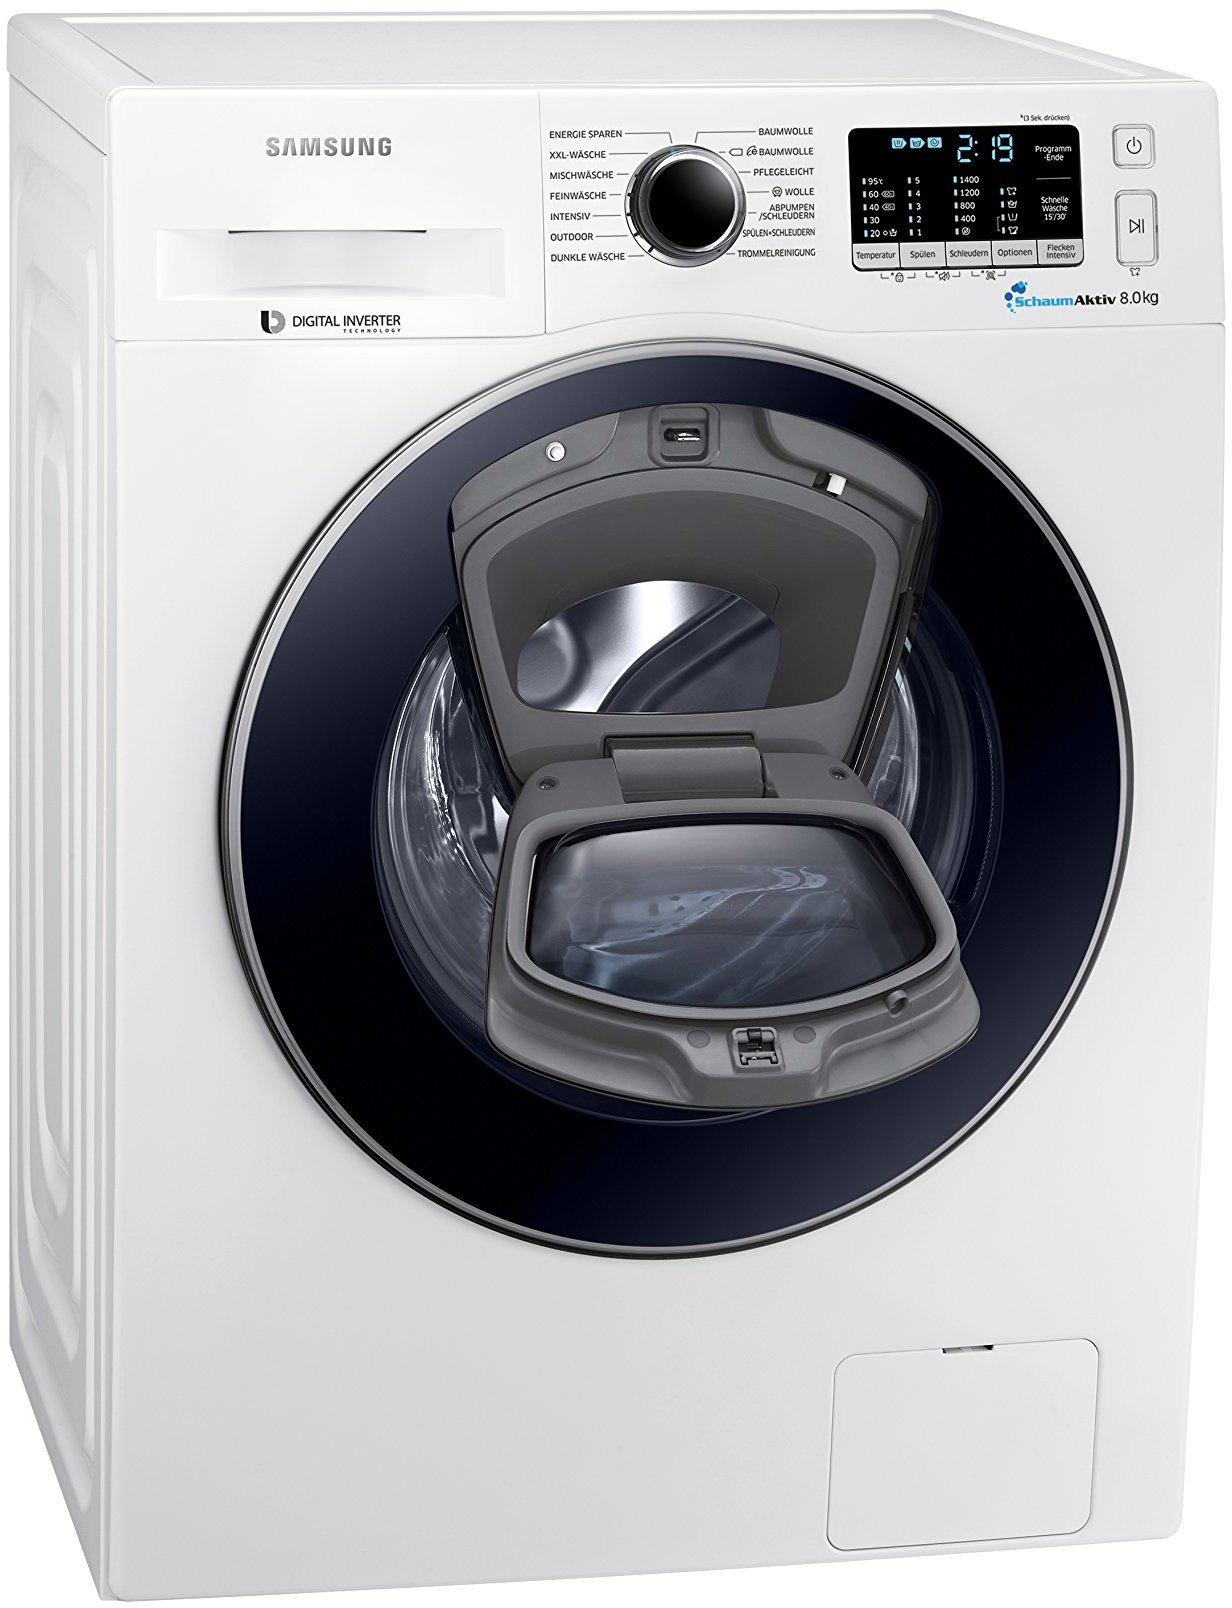 Samsung-WW8EK5400UWEG-AddWash-Waschmaschine-FL-A-116-kWhJahr-1400-UpM-8-kg-Wei-Add-Wash-Smart-Check-Digital-Inverter-Motor